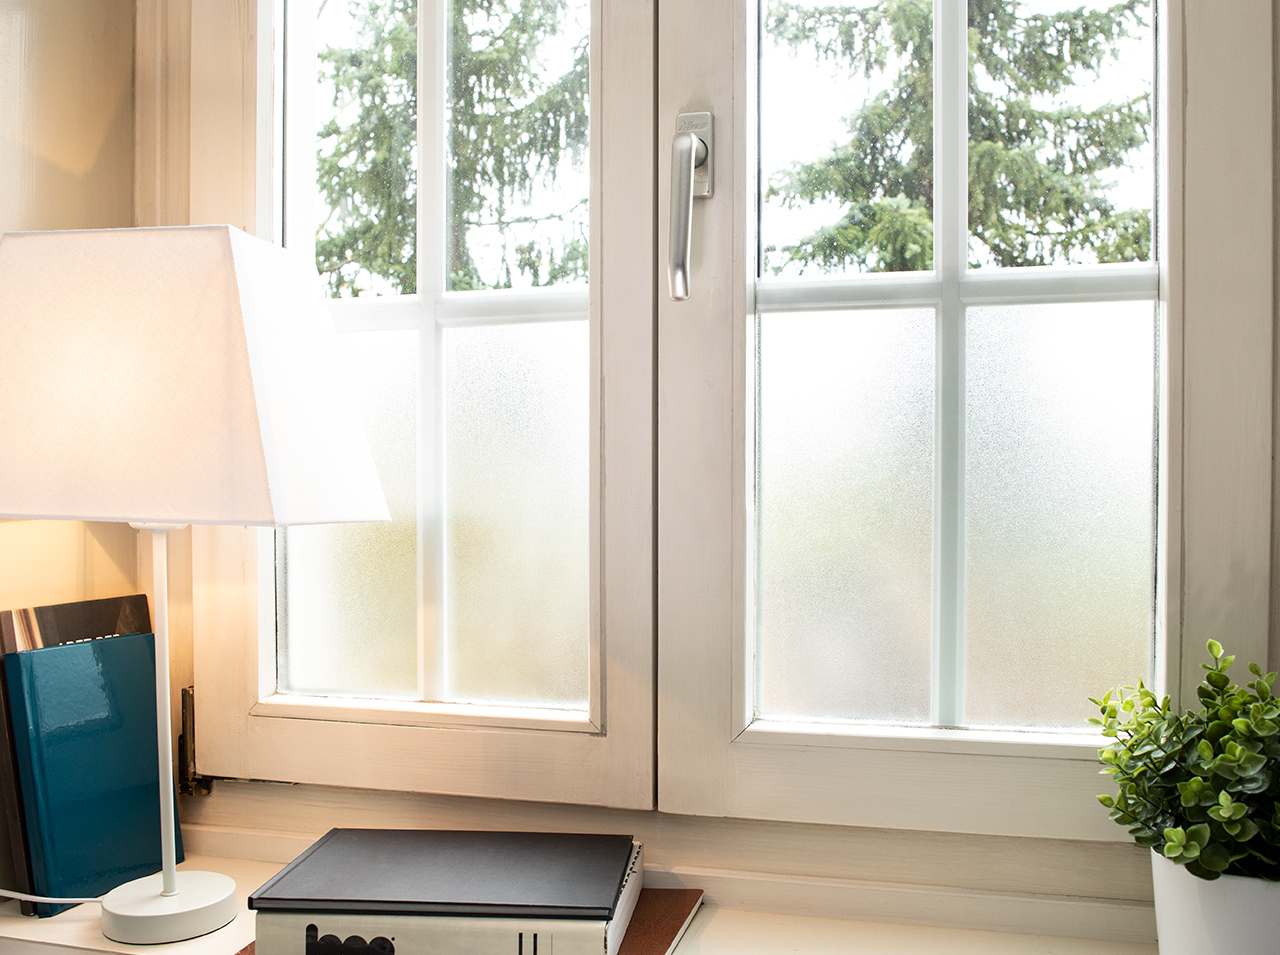 Milky static window film from d-c-fix® for decorative privacy and more privacy at windows